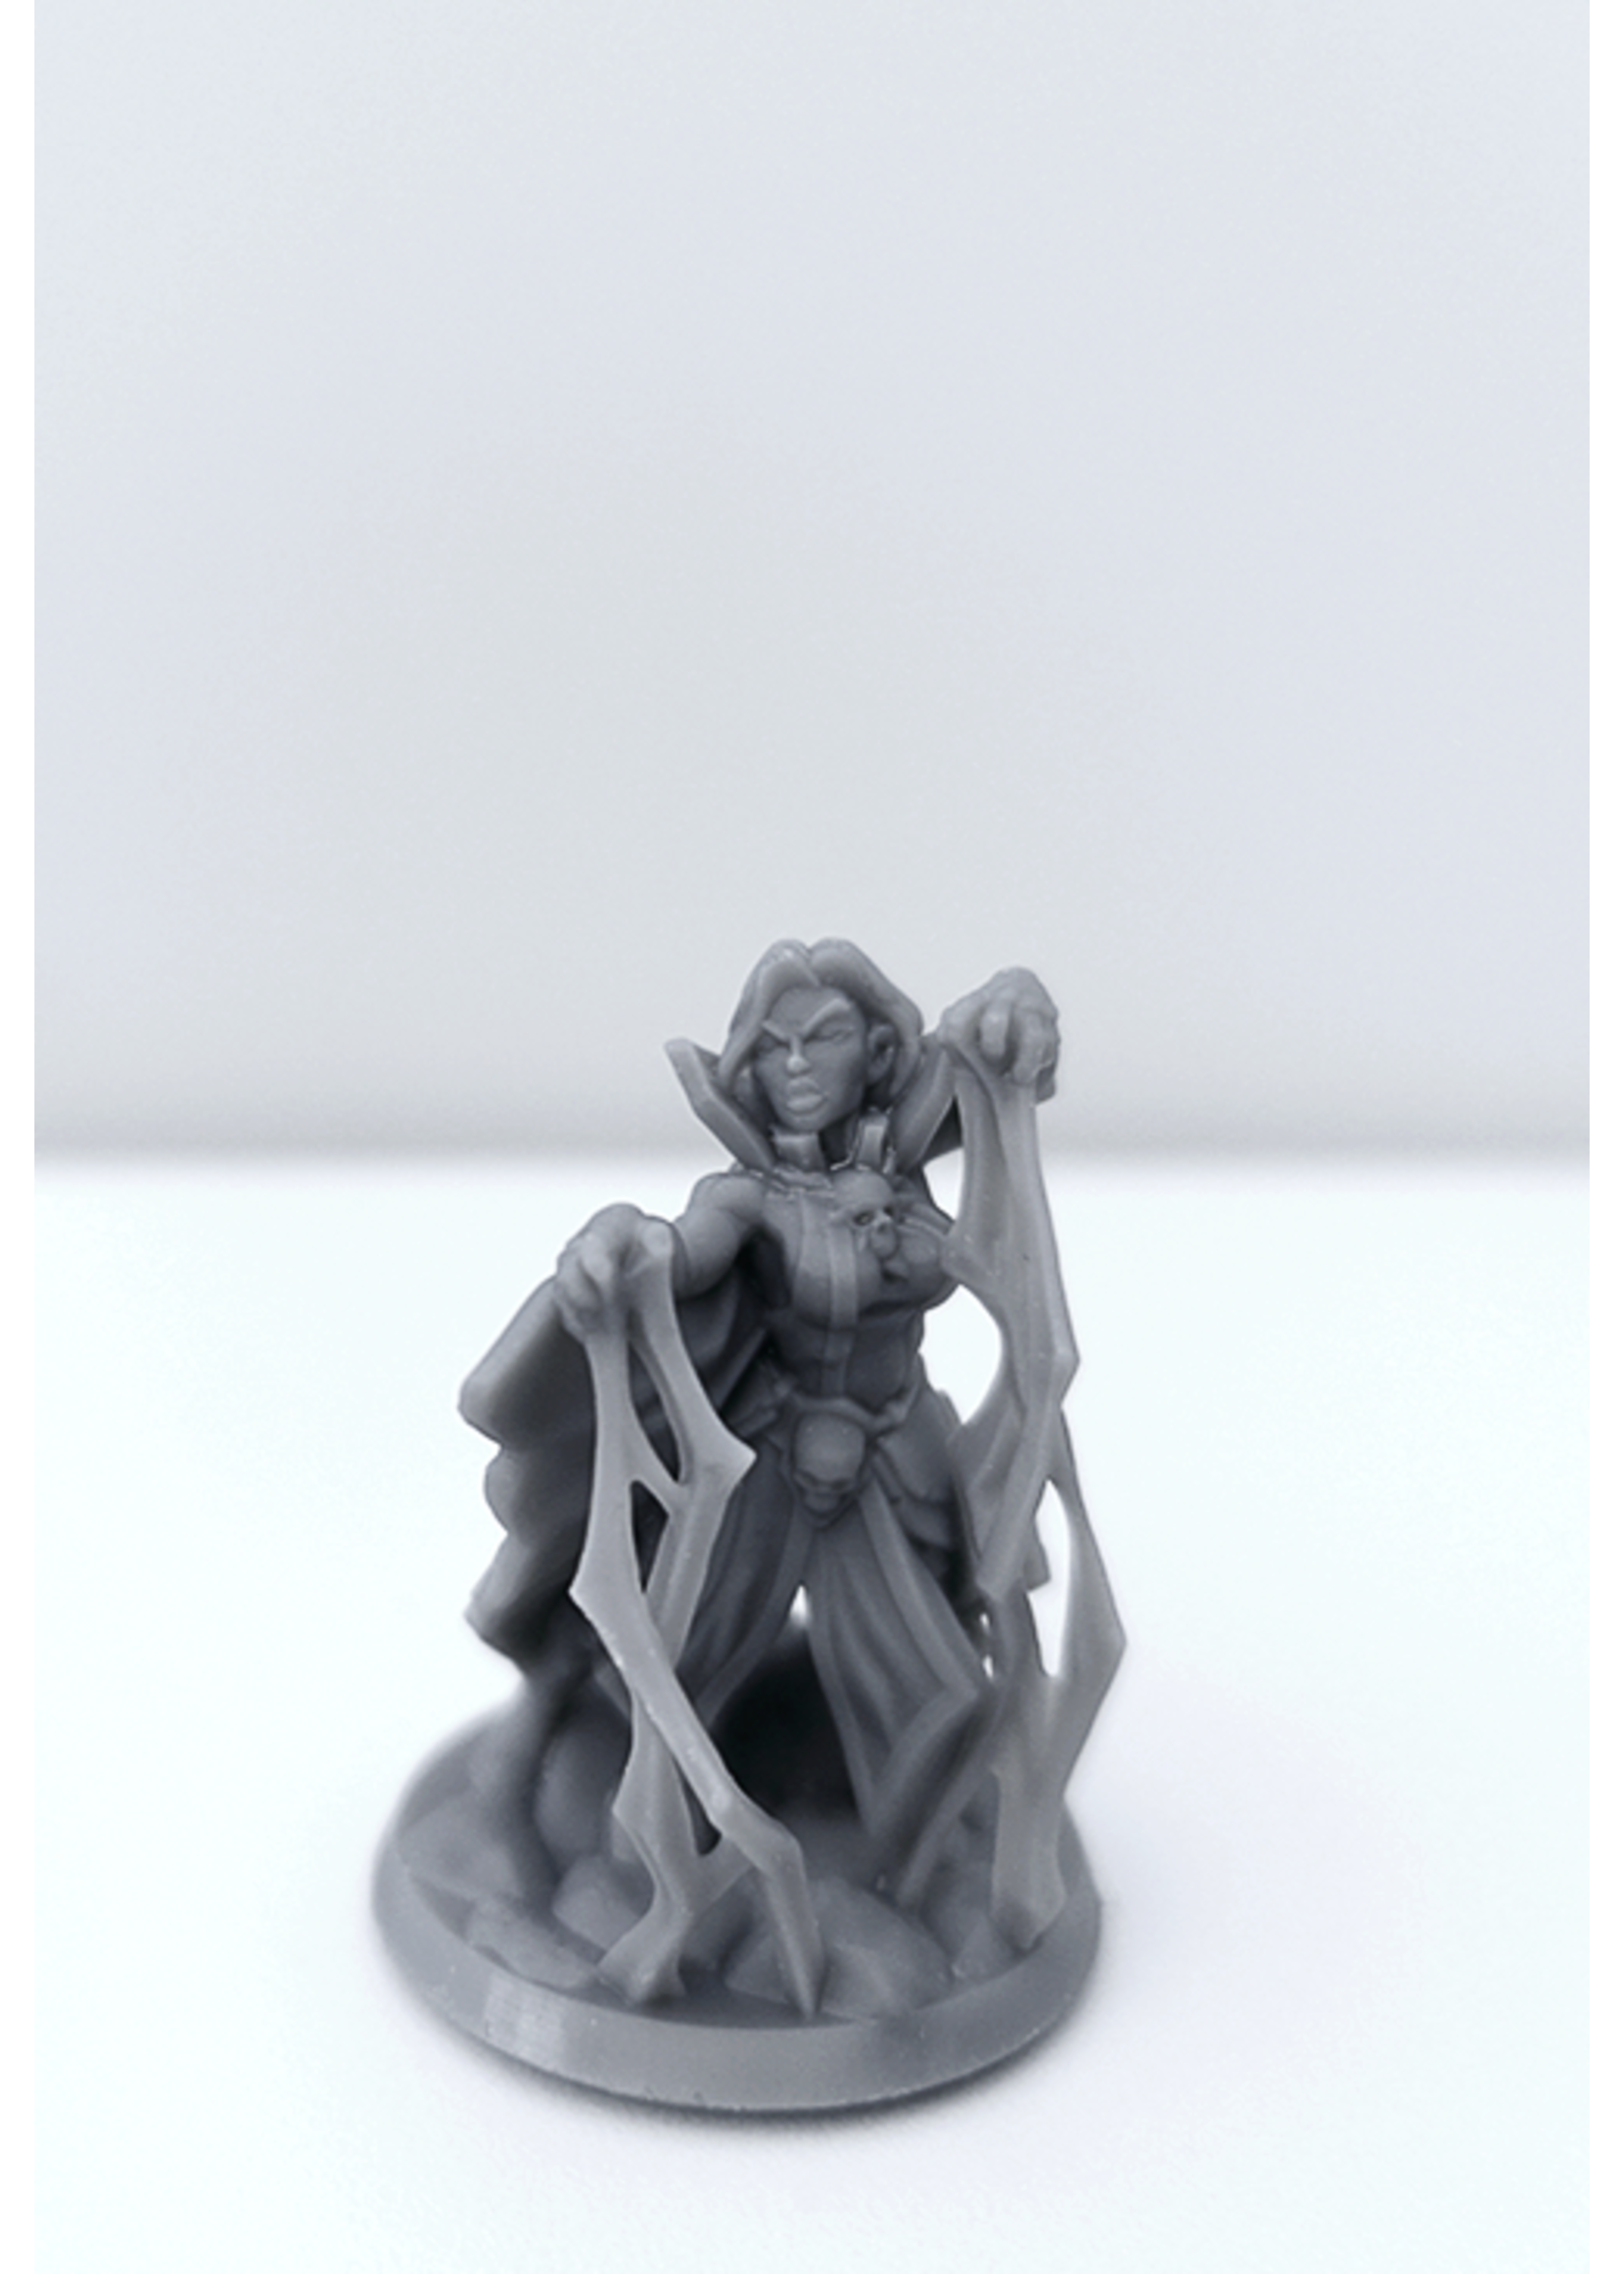 3D Printed Miniature - Necromancer Female 01 - Dungeons & Dragons - Hero of the Realm KS